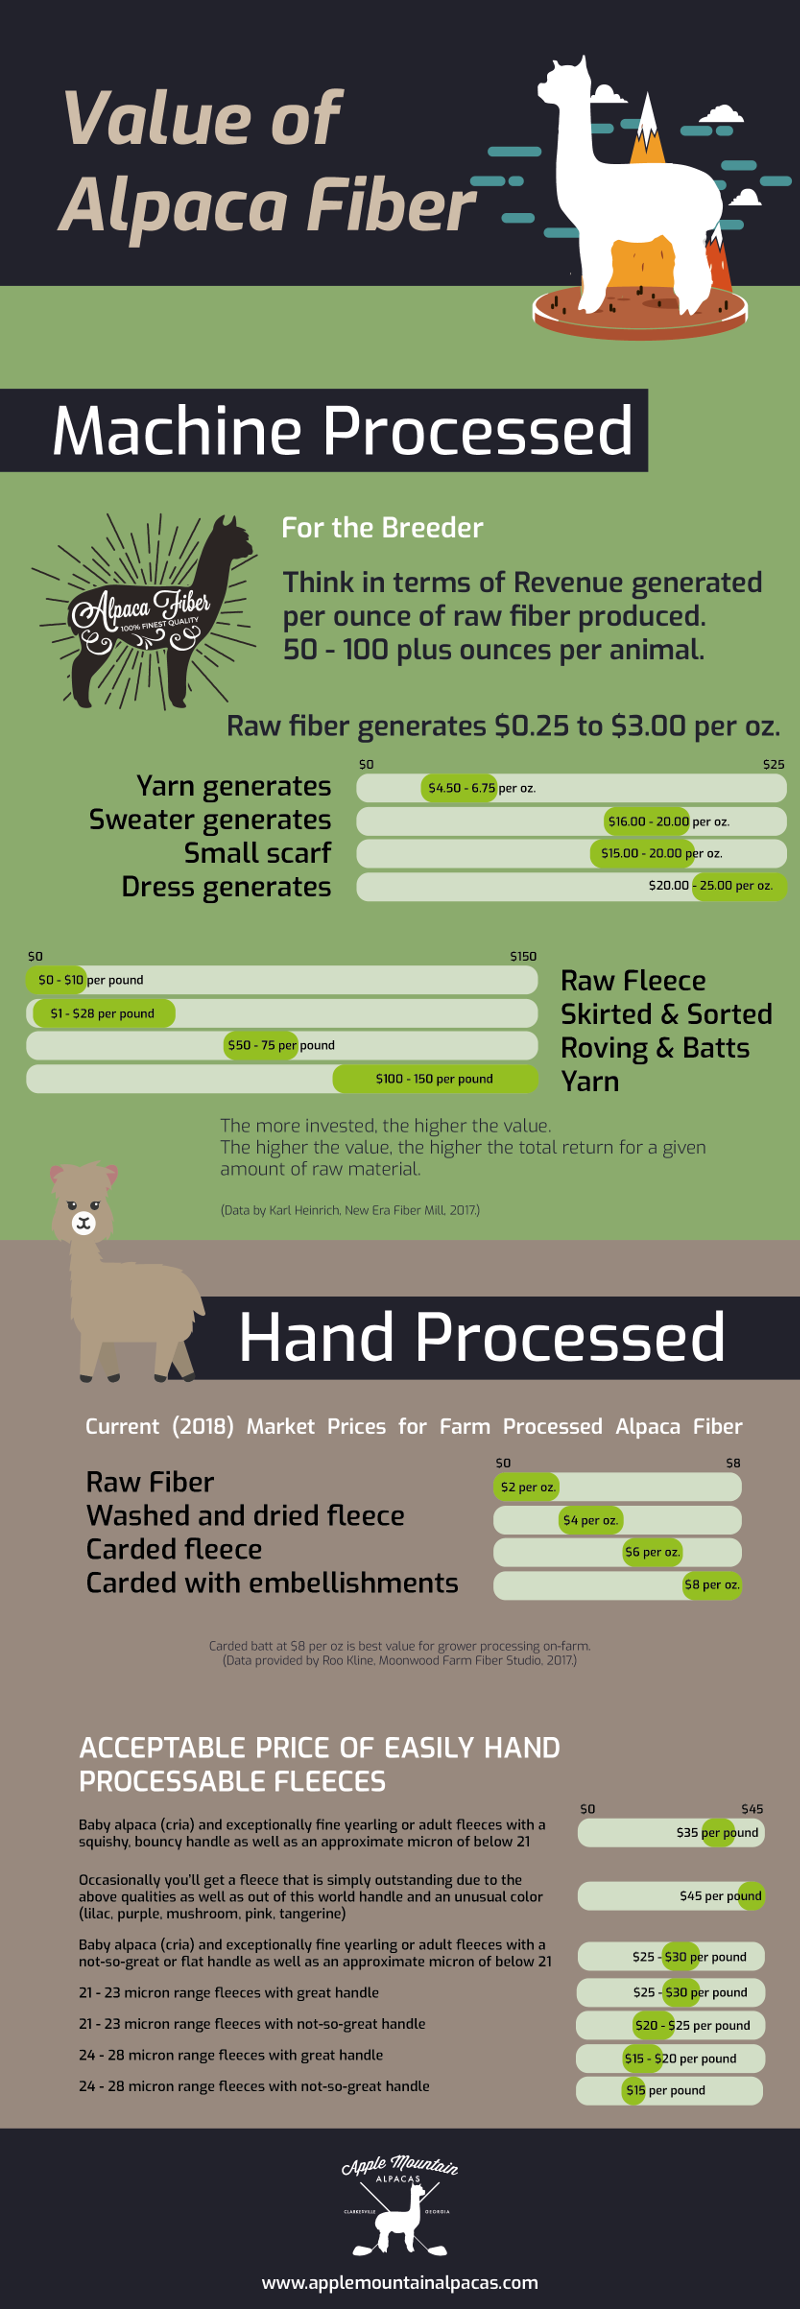 Value of Alpaca Fiber